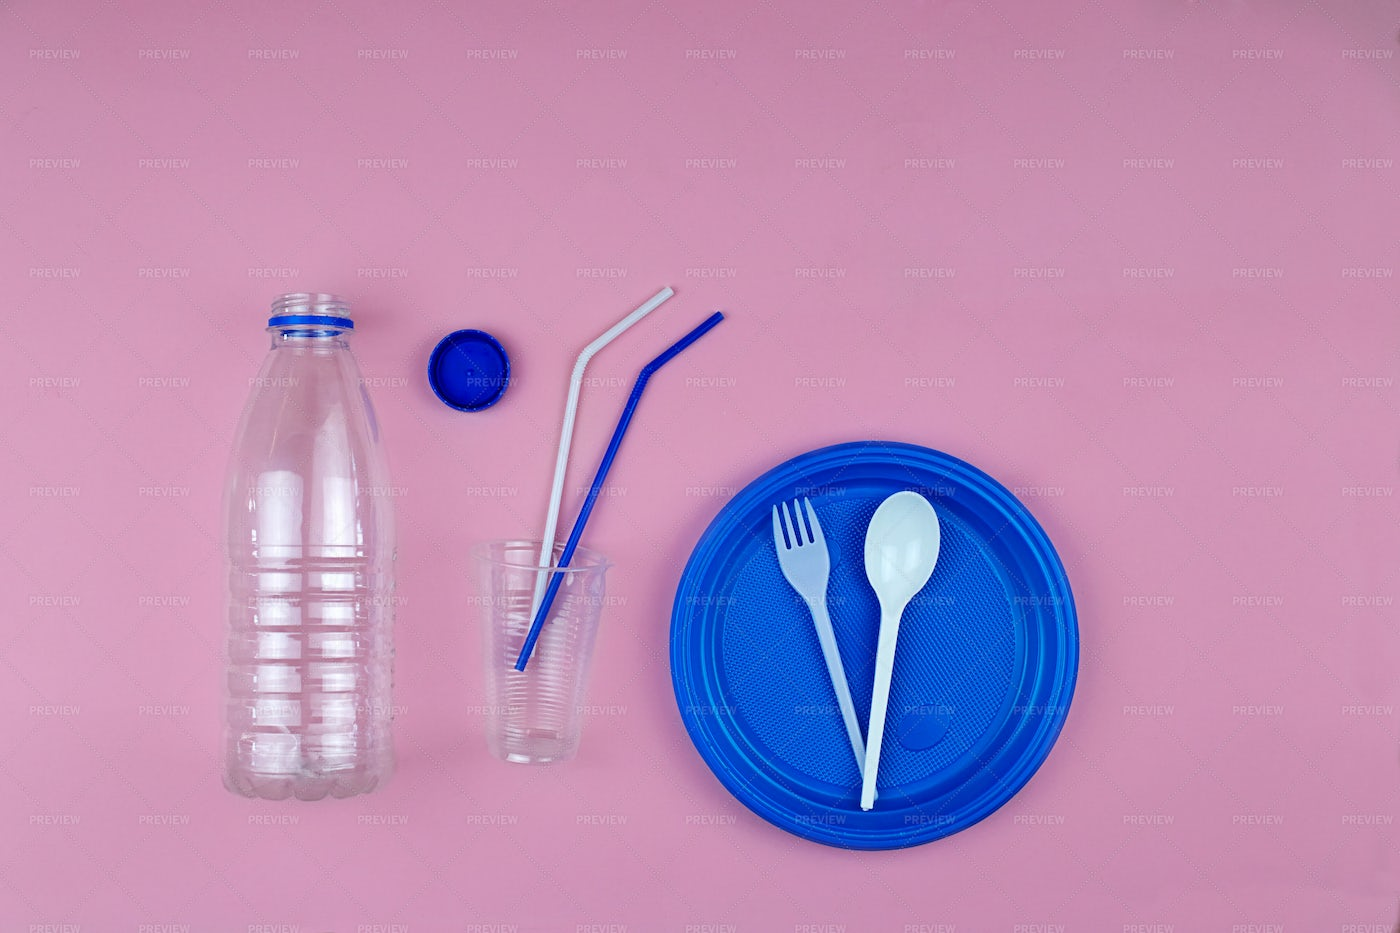 Plastic Tableware Recycle Background: Stock Photos